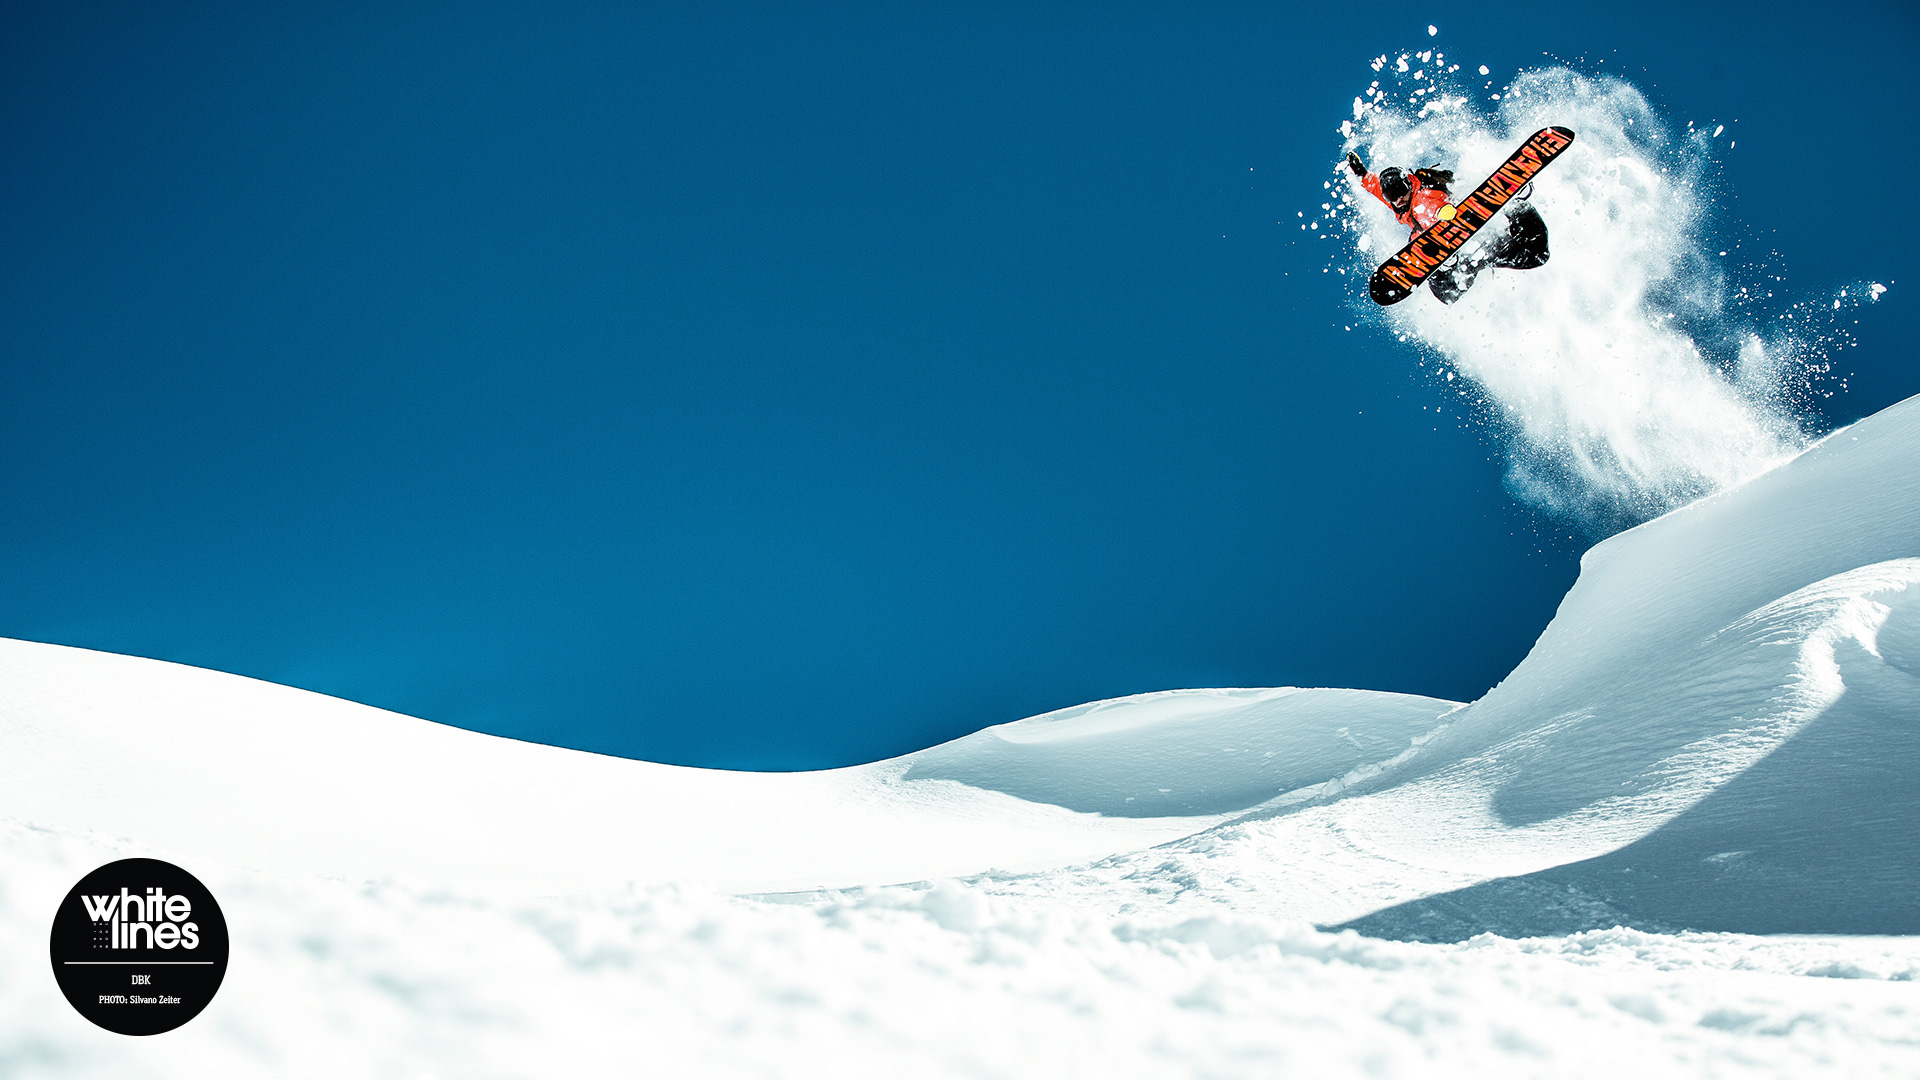 Snowboarding Wallpapers